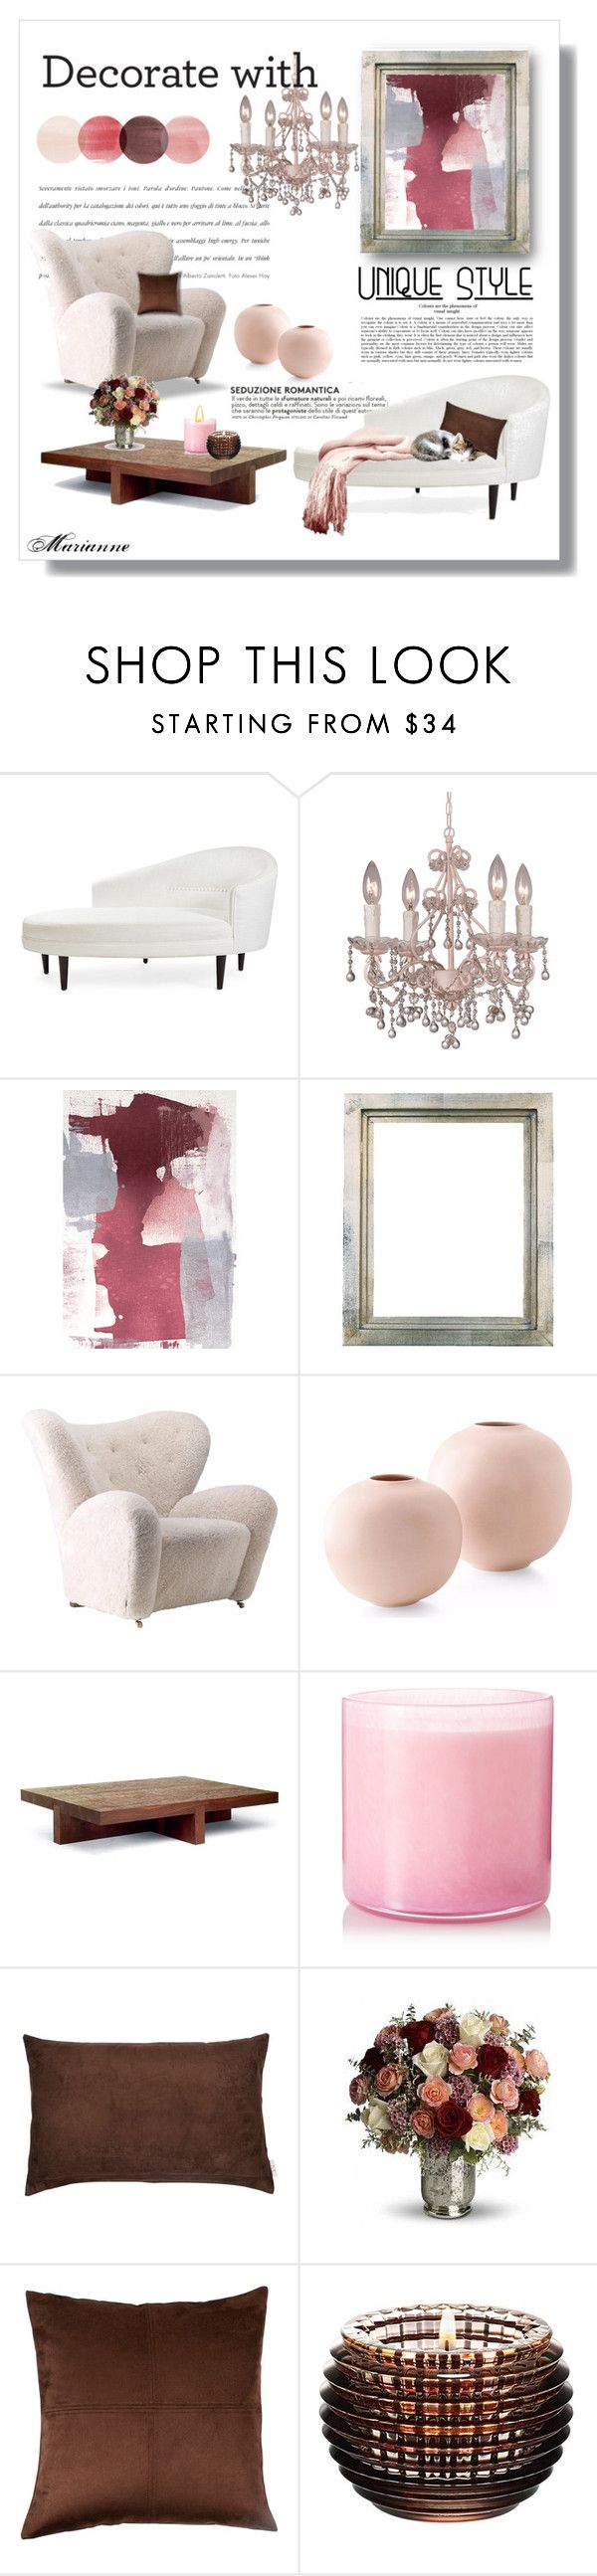 """Home 7"" by marianne-spiessens on Polyvore featuring interior, interiors, interior design, home, home decor, interior decorating, Jonathan Adler, Crystorama, Linteloo and LAFCO"